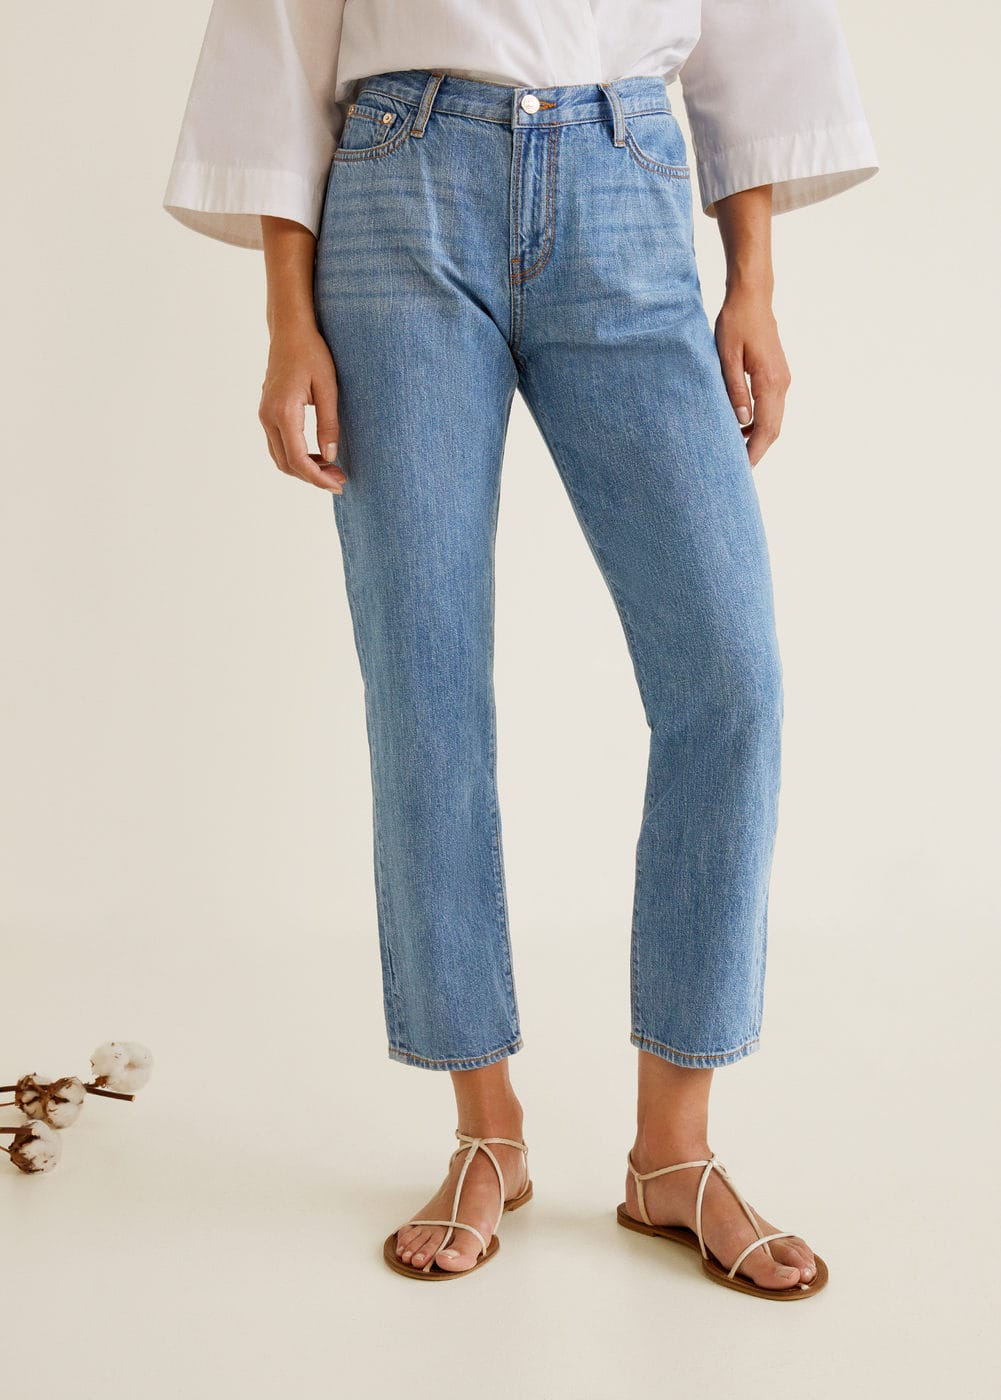 m-relaxed:jeans relaxed crop